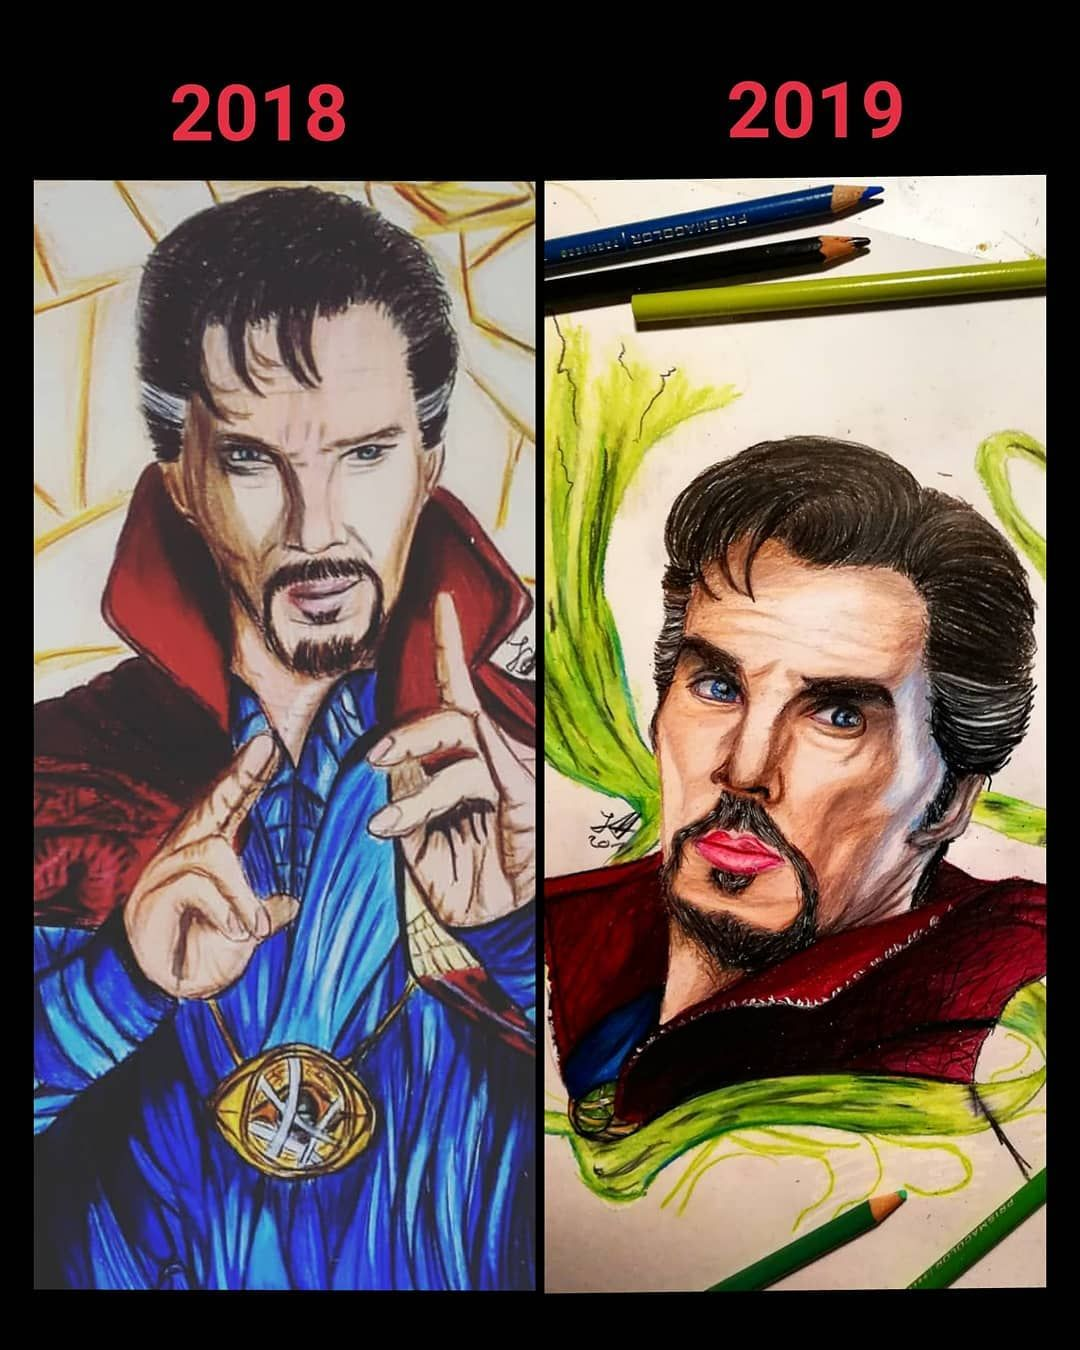 1 year improvement Dr. Strange// what do you think